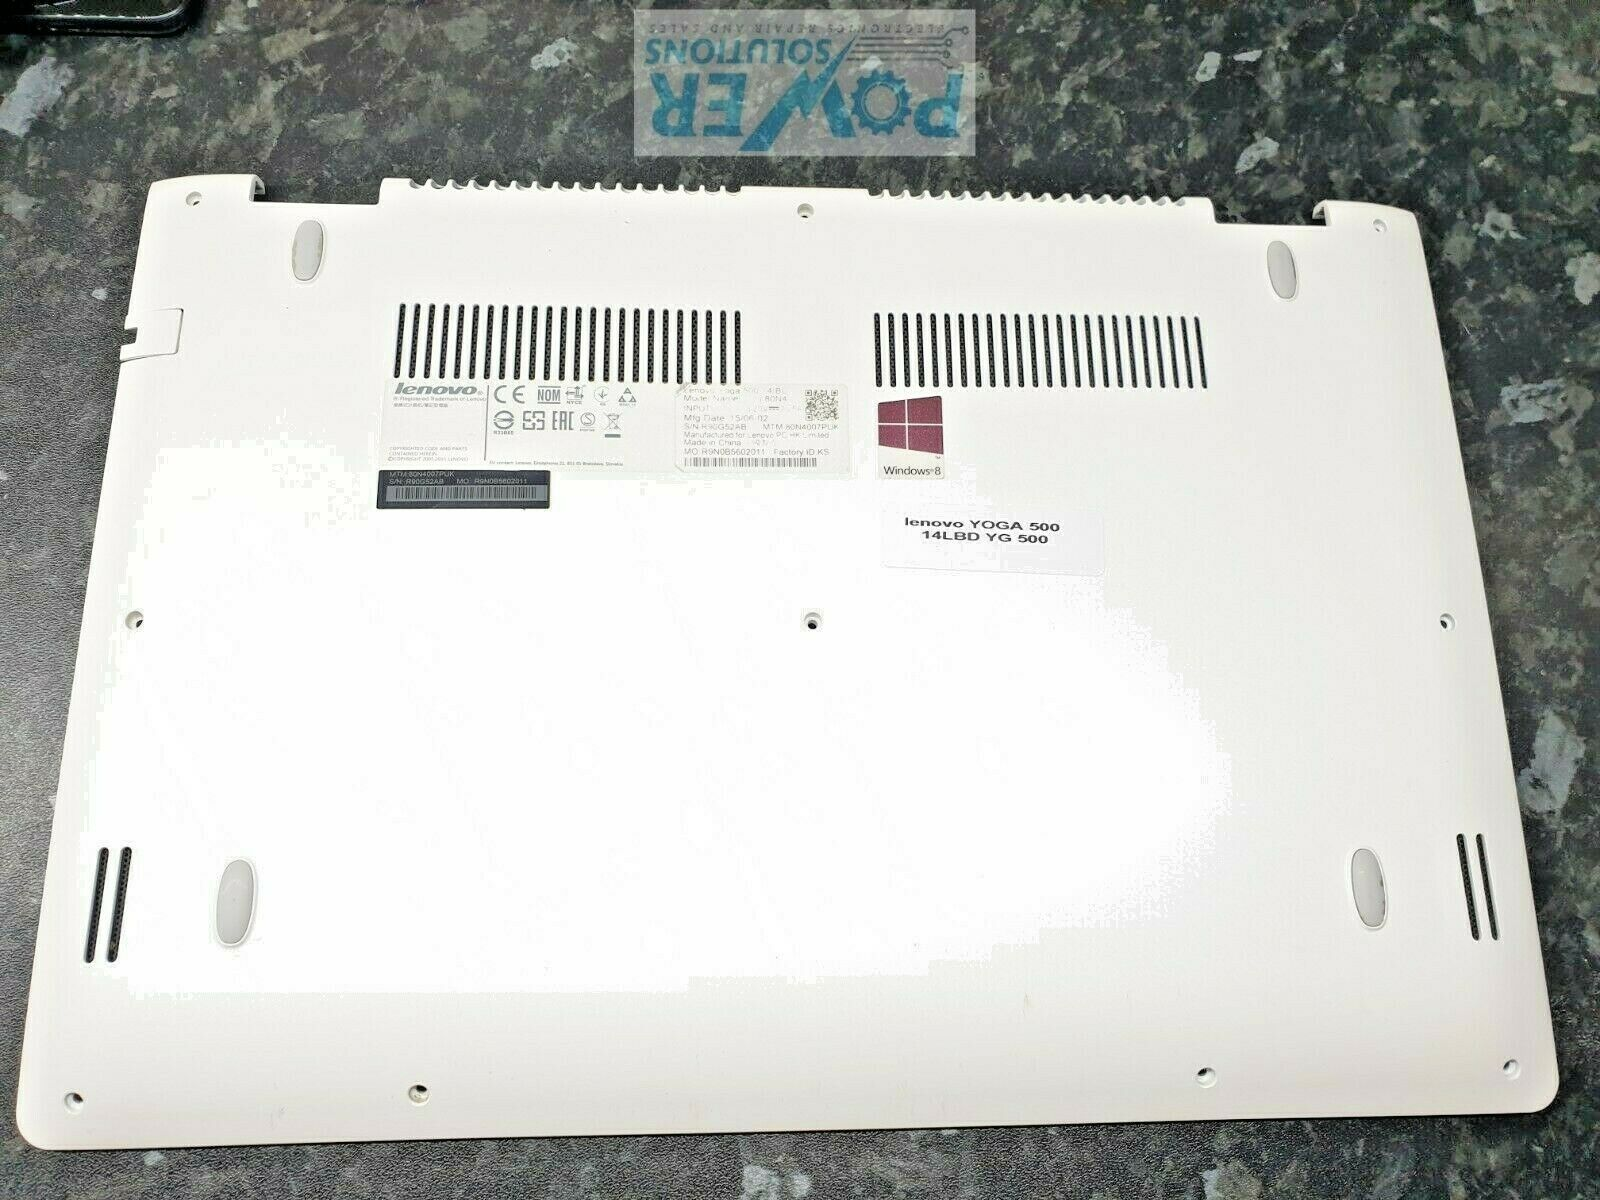 LENOVO YG500 YOGA 14LBD BOTTOM COVER WHITE GENUINE PARTS 143573835261